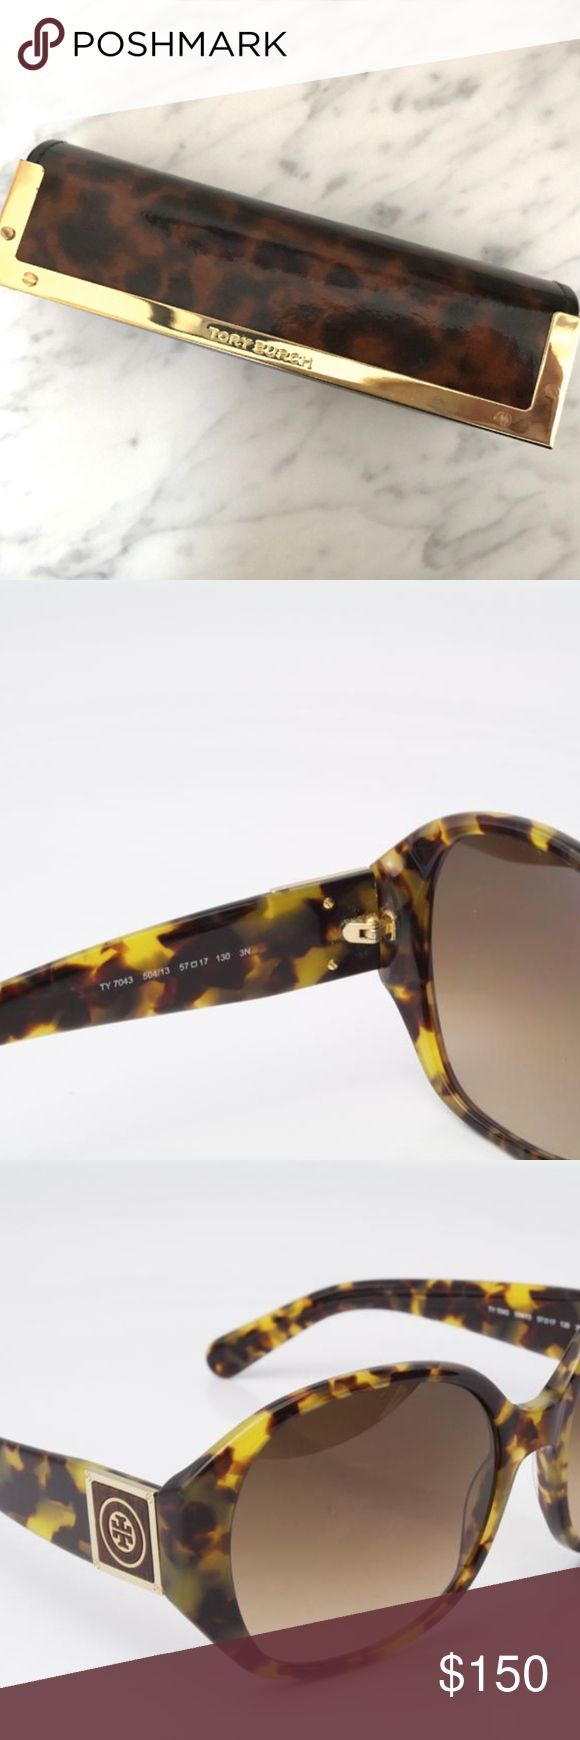 Tory Burch Tortoise Shell Sunglasses & Case Like-new Tory Burch tortoise shell sunglasses with original tortoise shell case. Details below:  Model number: 7043 Frame Color: Amber Tortoise Lens color: Gradient Brown Eye Size: 57mm Bridge Size: 17mm Temple Length: 130mm Lens Height: 50mm Tory Burch Accessories Sunglasses